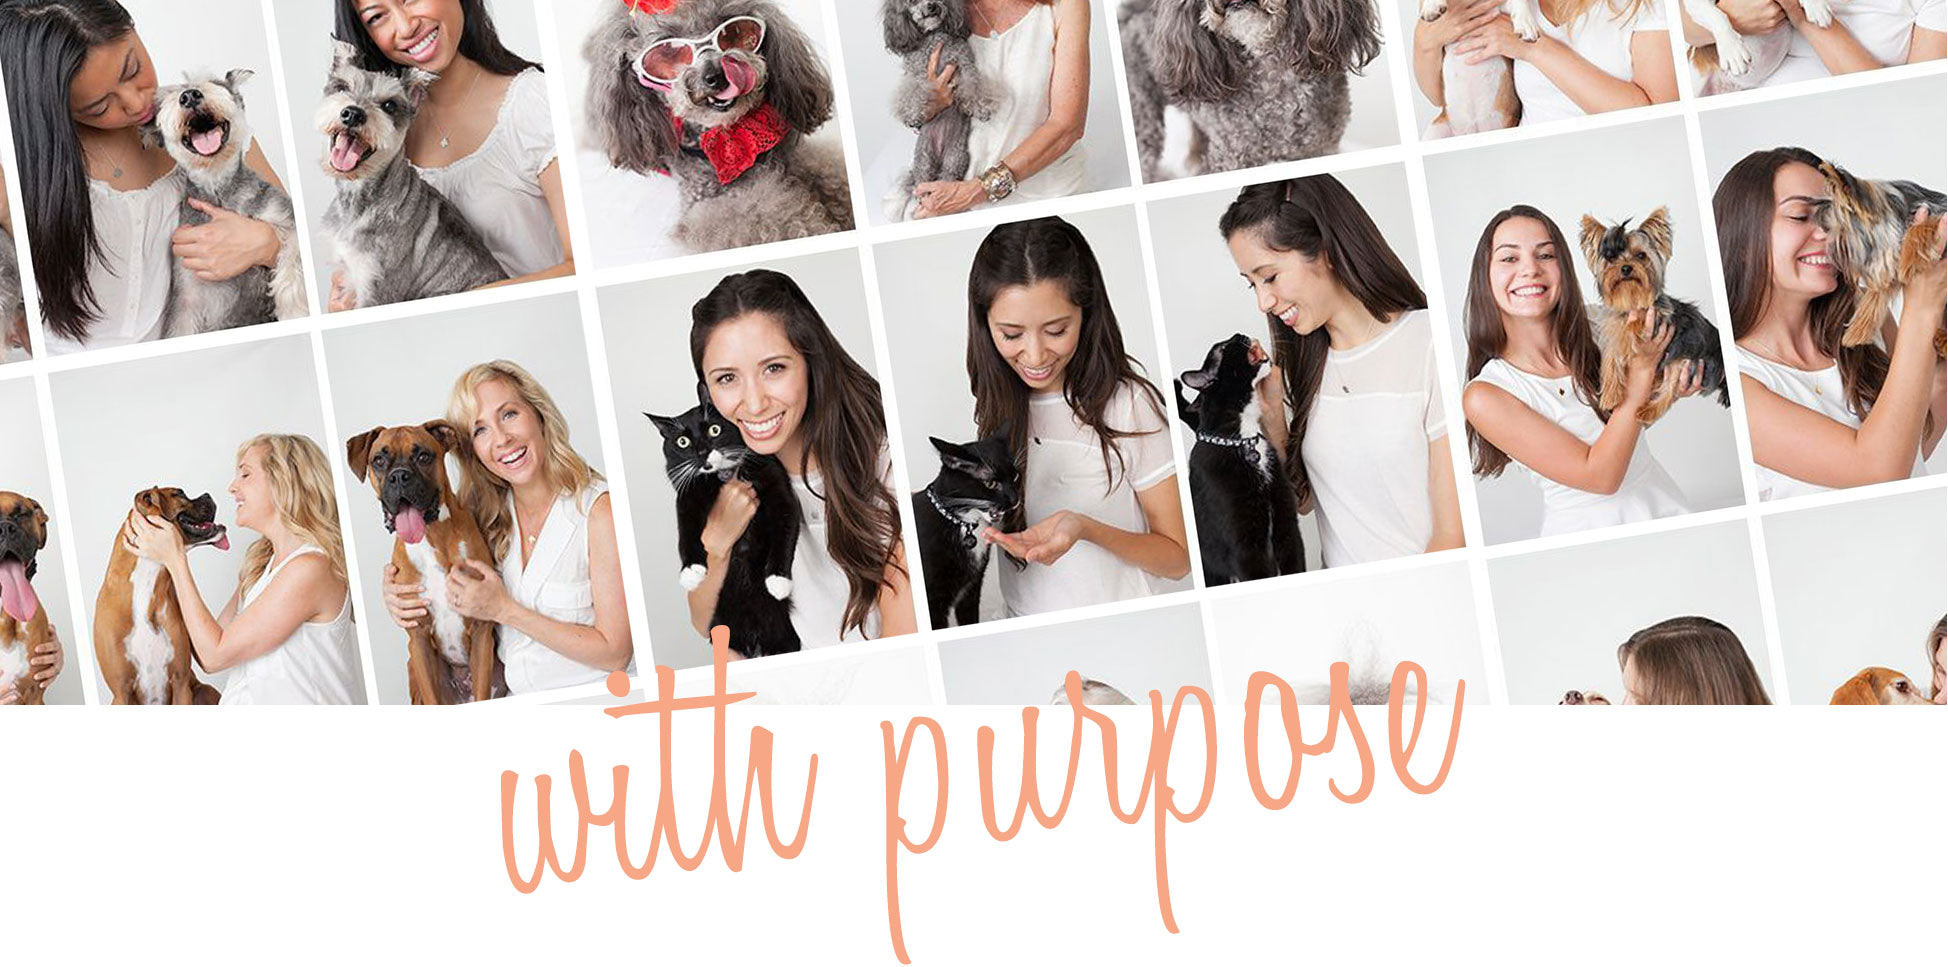 Pet silhouette jewelry and keepsakes with a purpose